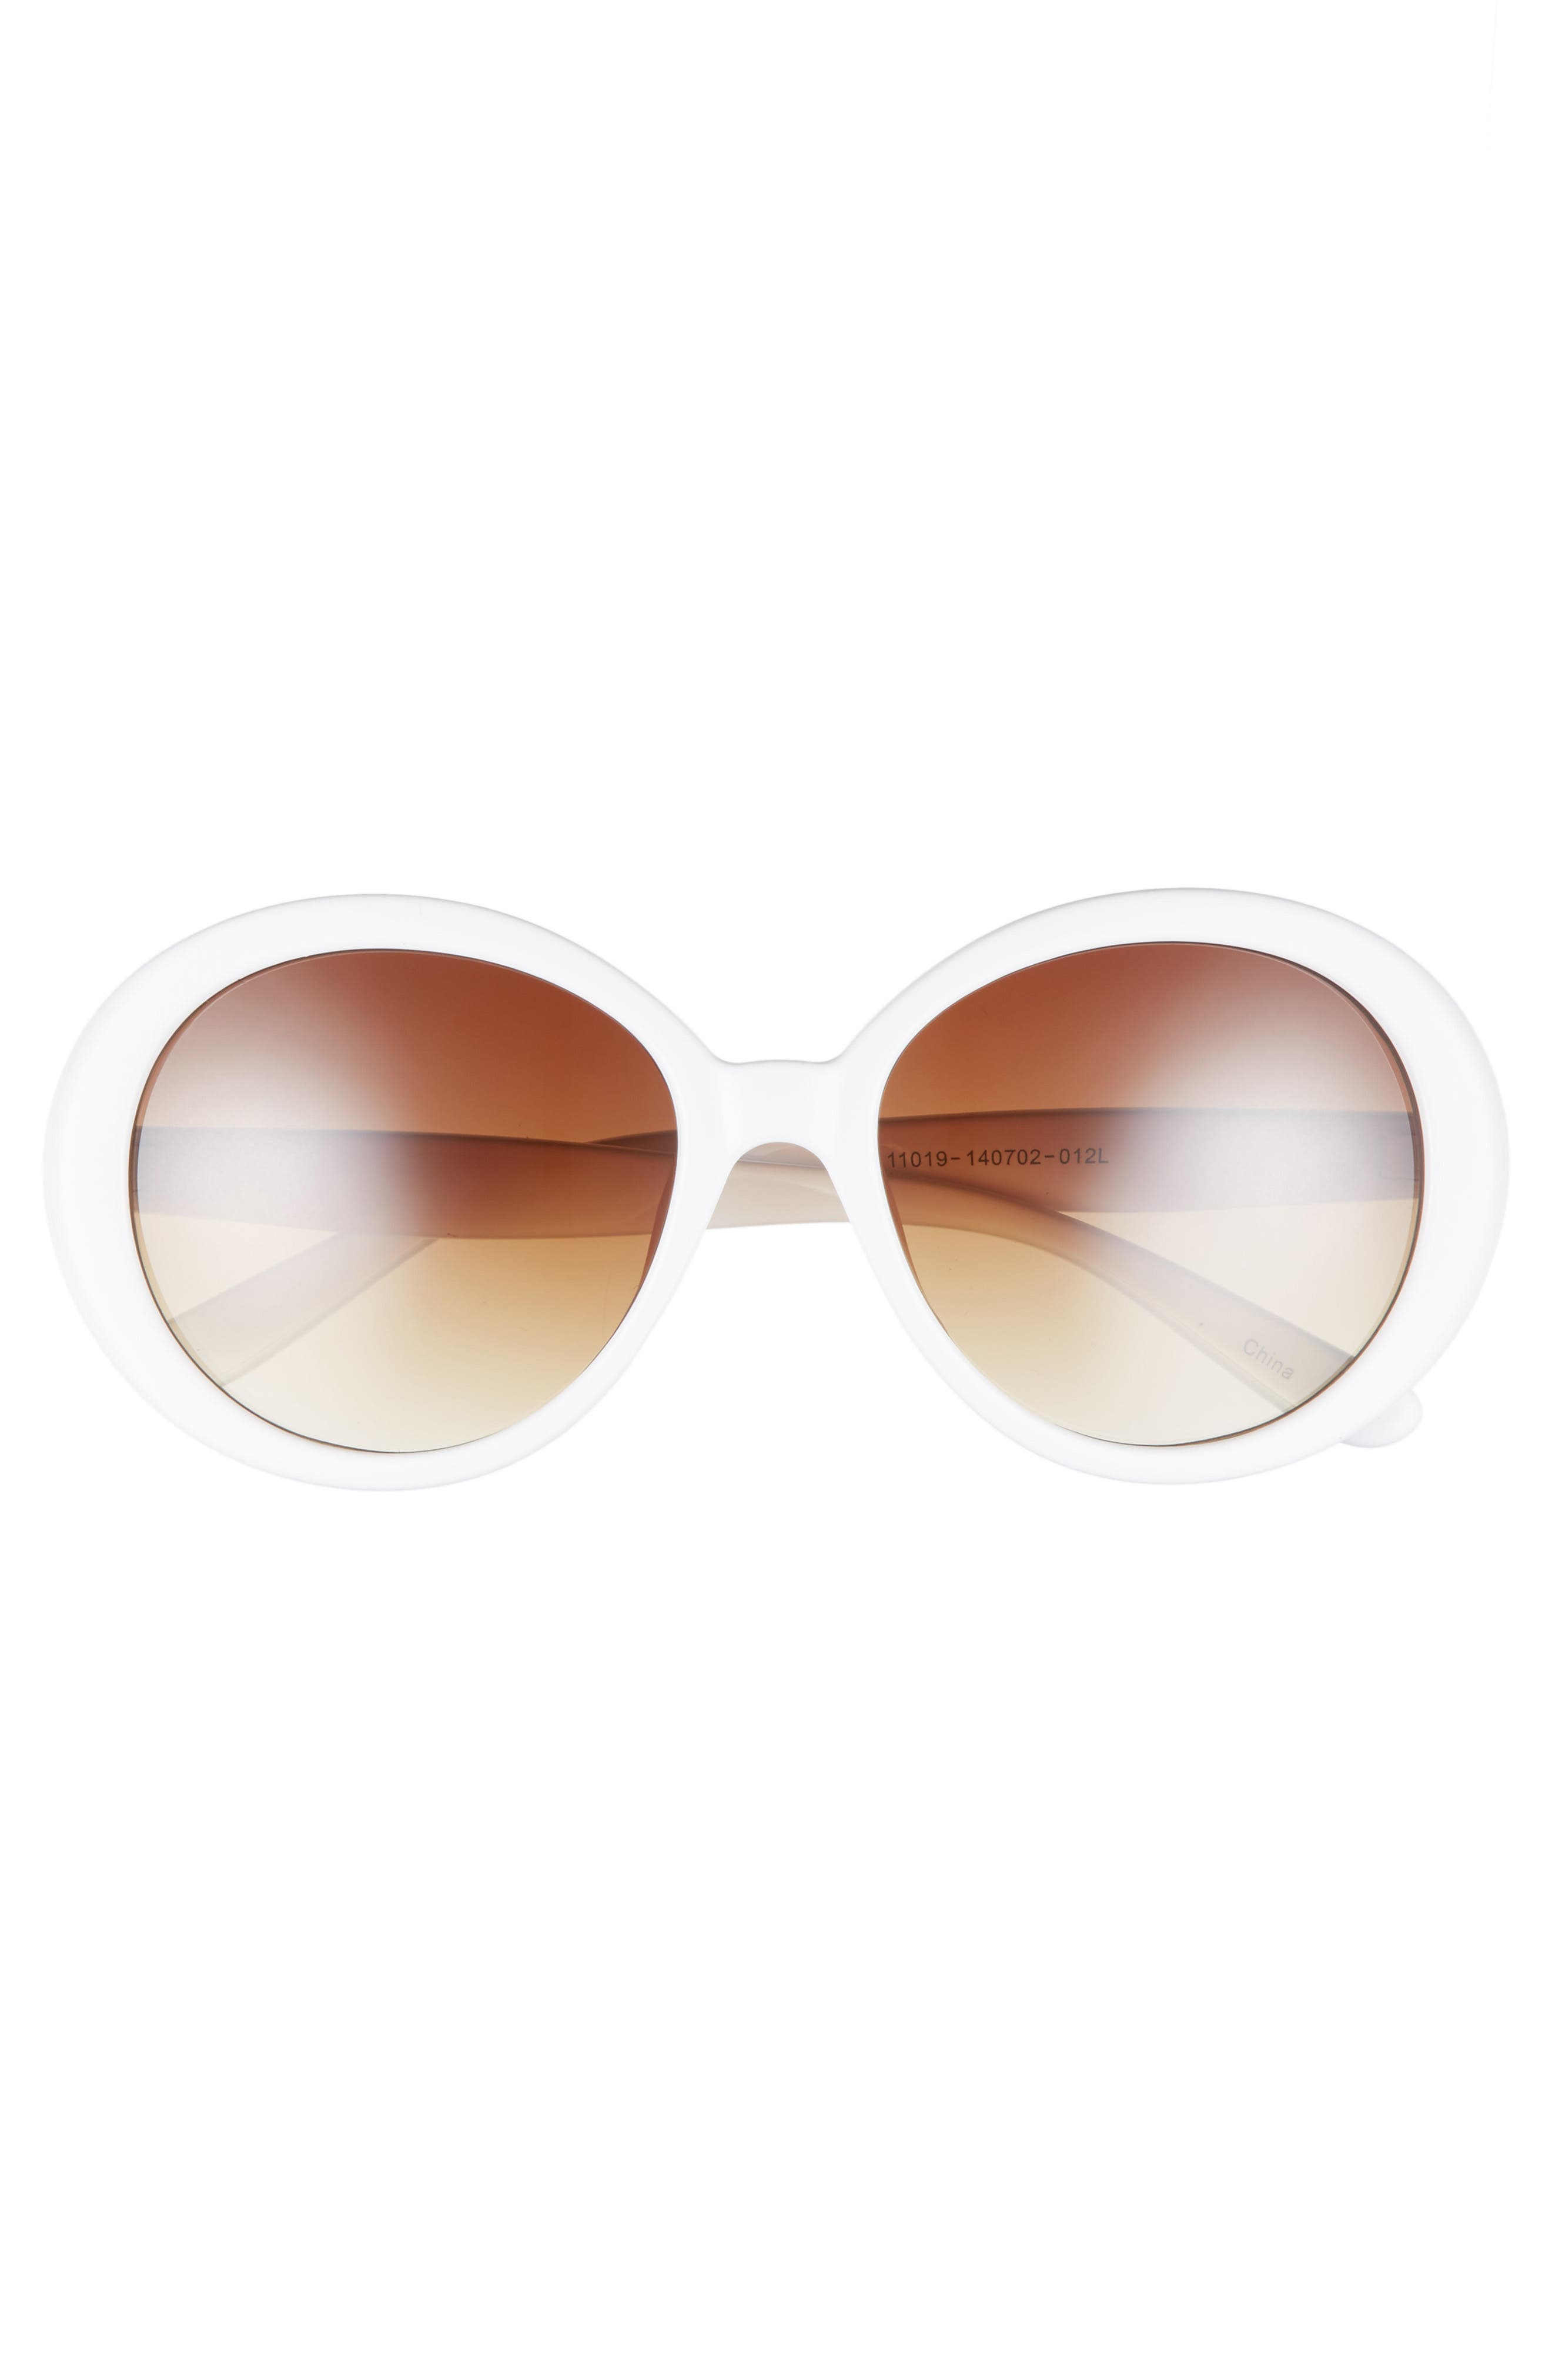 55mm Oval Sunglasses,                             Alternate thumbnail 3, color,                             Cream/ Brown